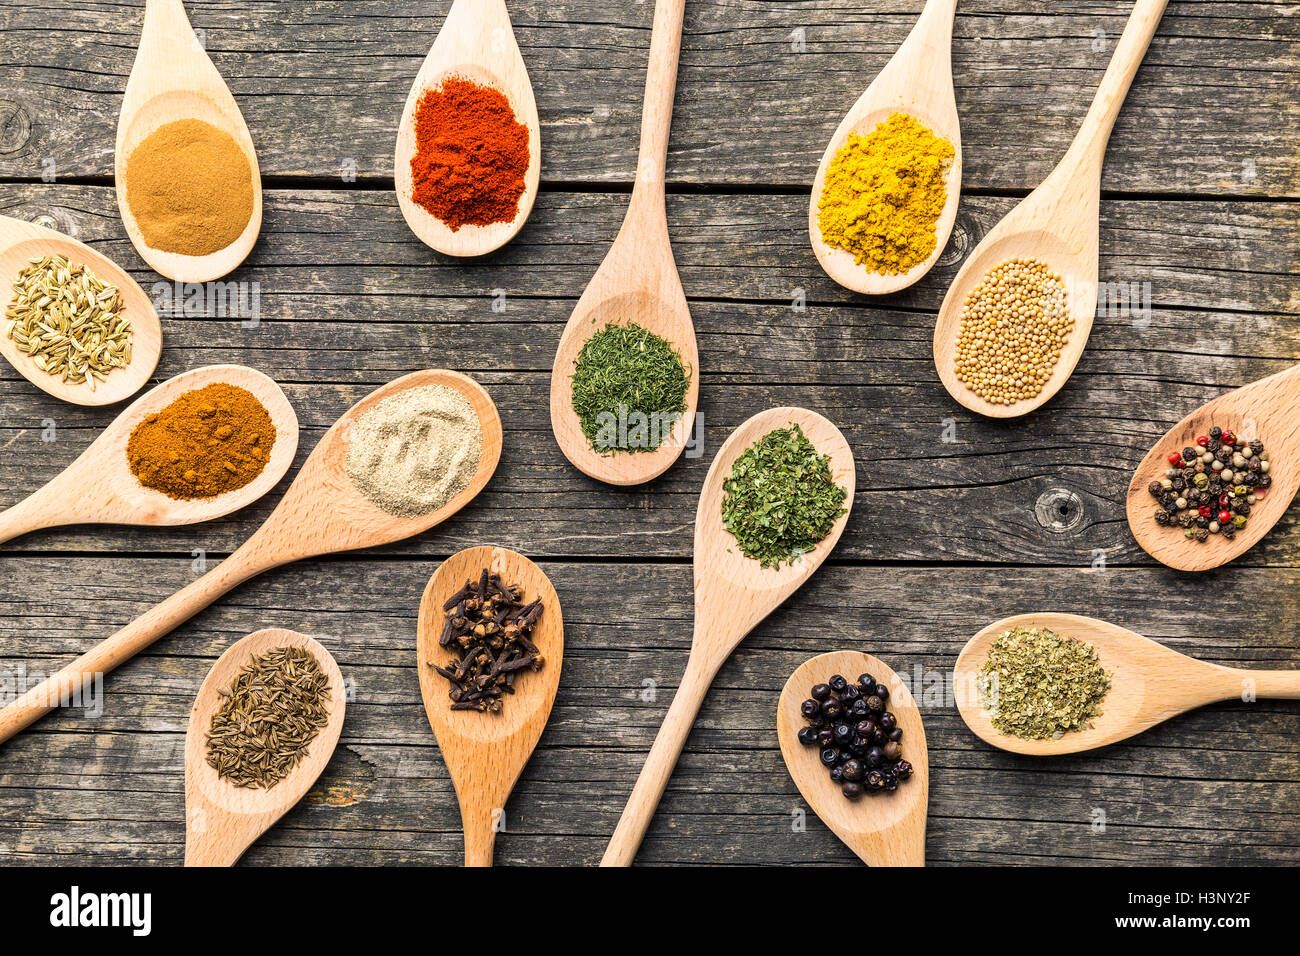 Various spices in wooden spoons on old wooden table. Top view. - Stock Image